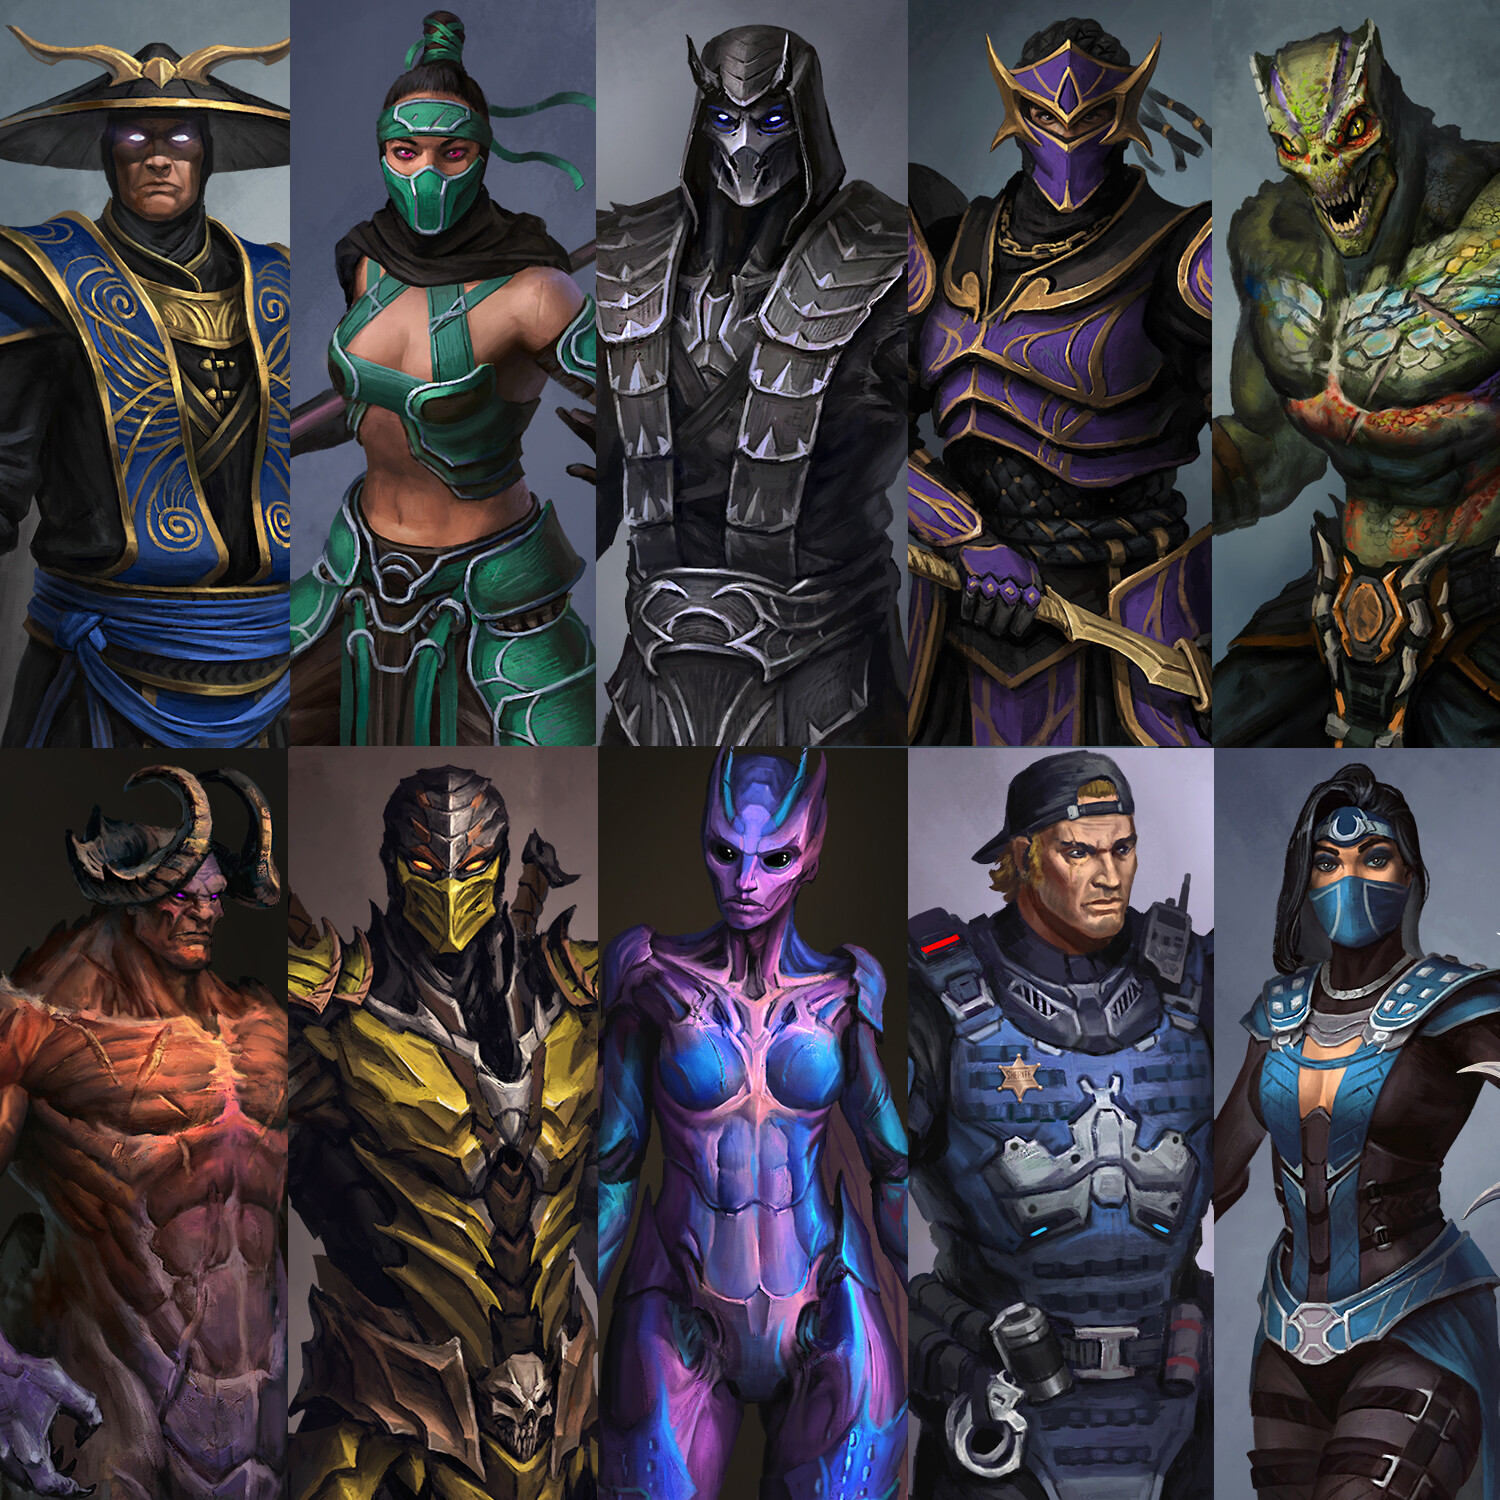 Artstation Alternative Designs Skins Of The Mk Characters